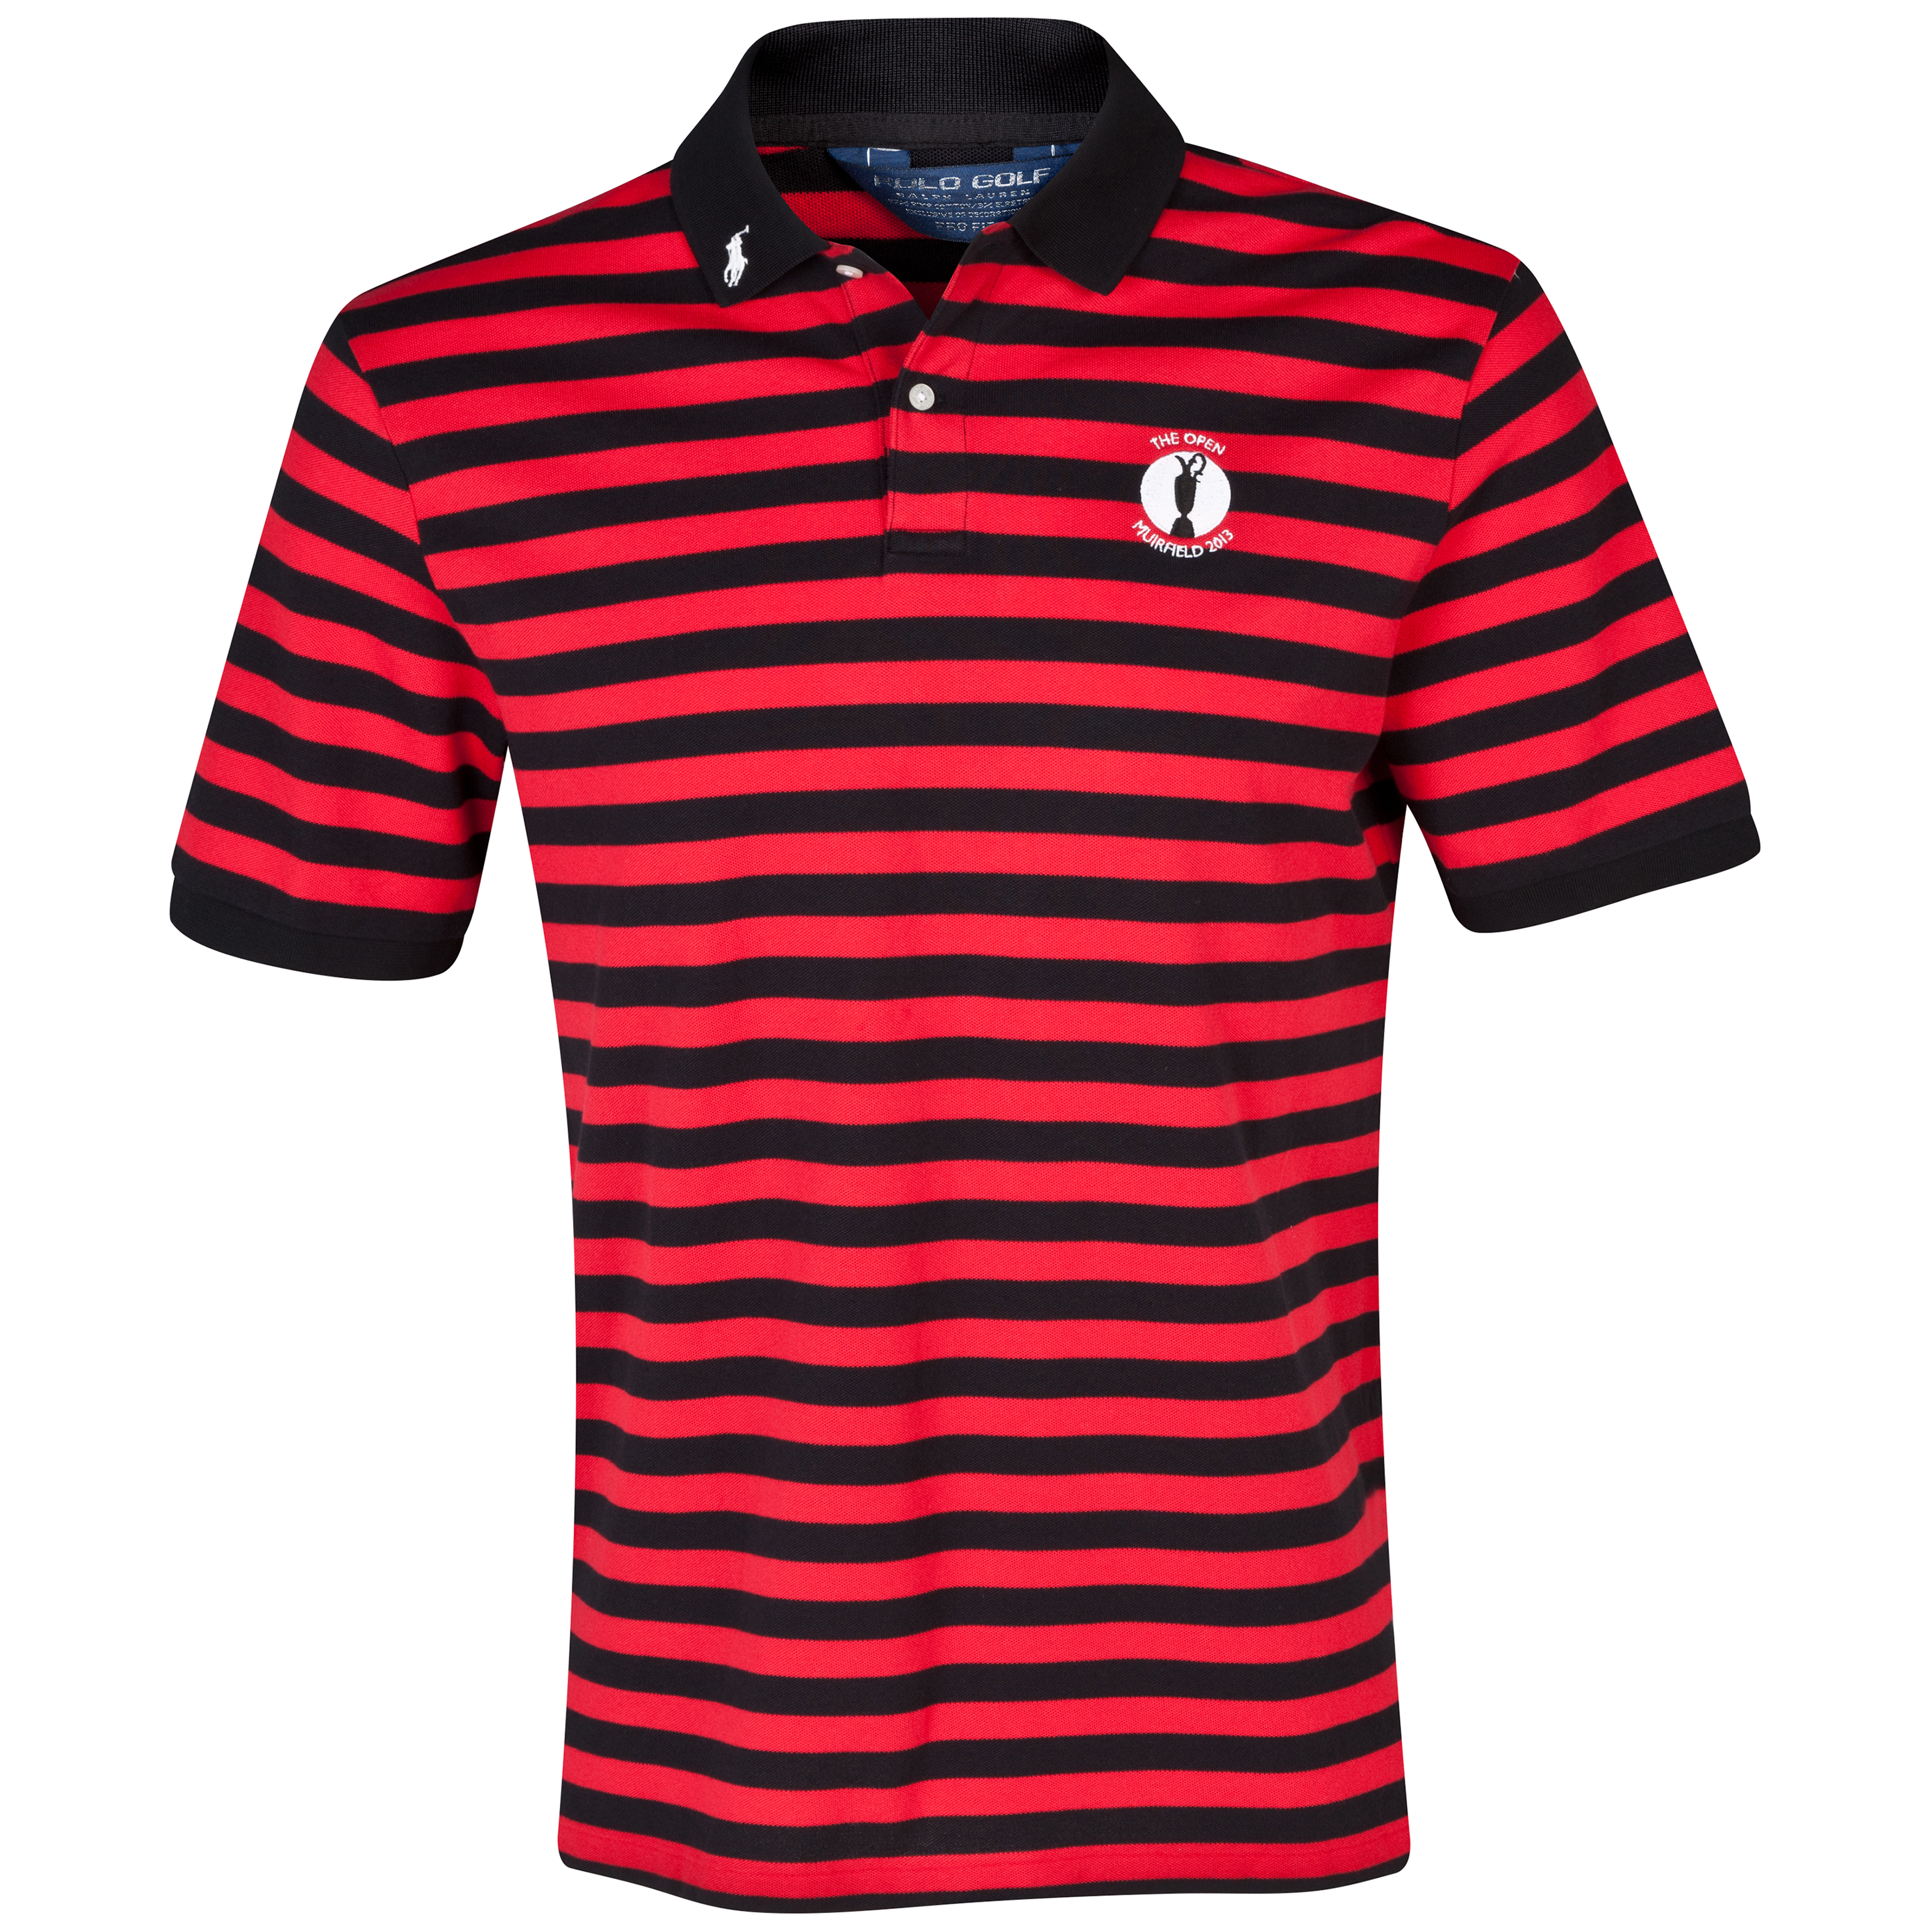 The Open Championship 2013 Muirfield Polo Ralph Lauren Stripe Polo Black